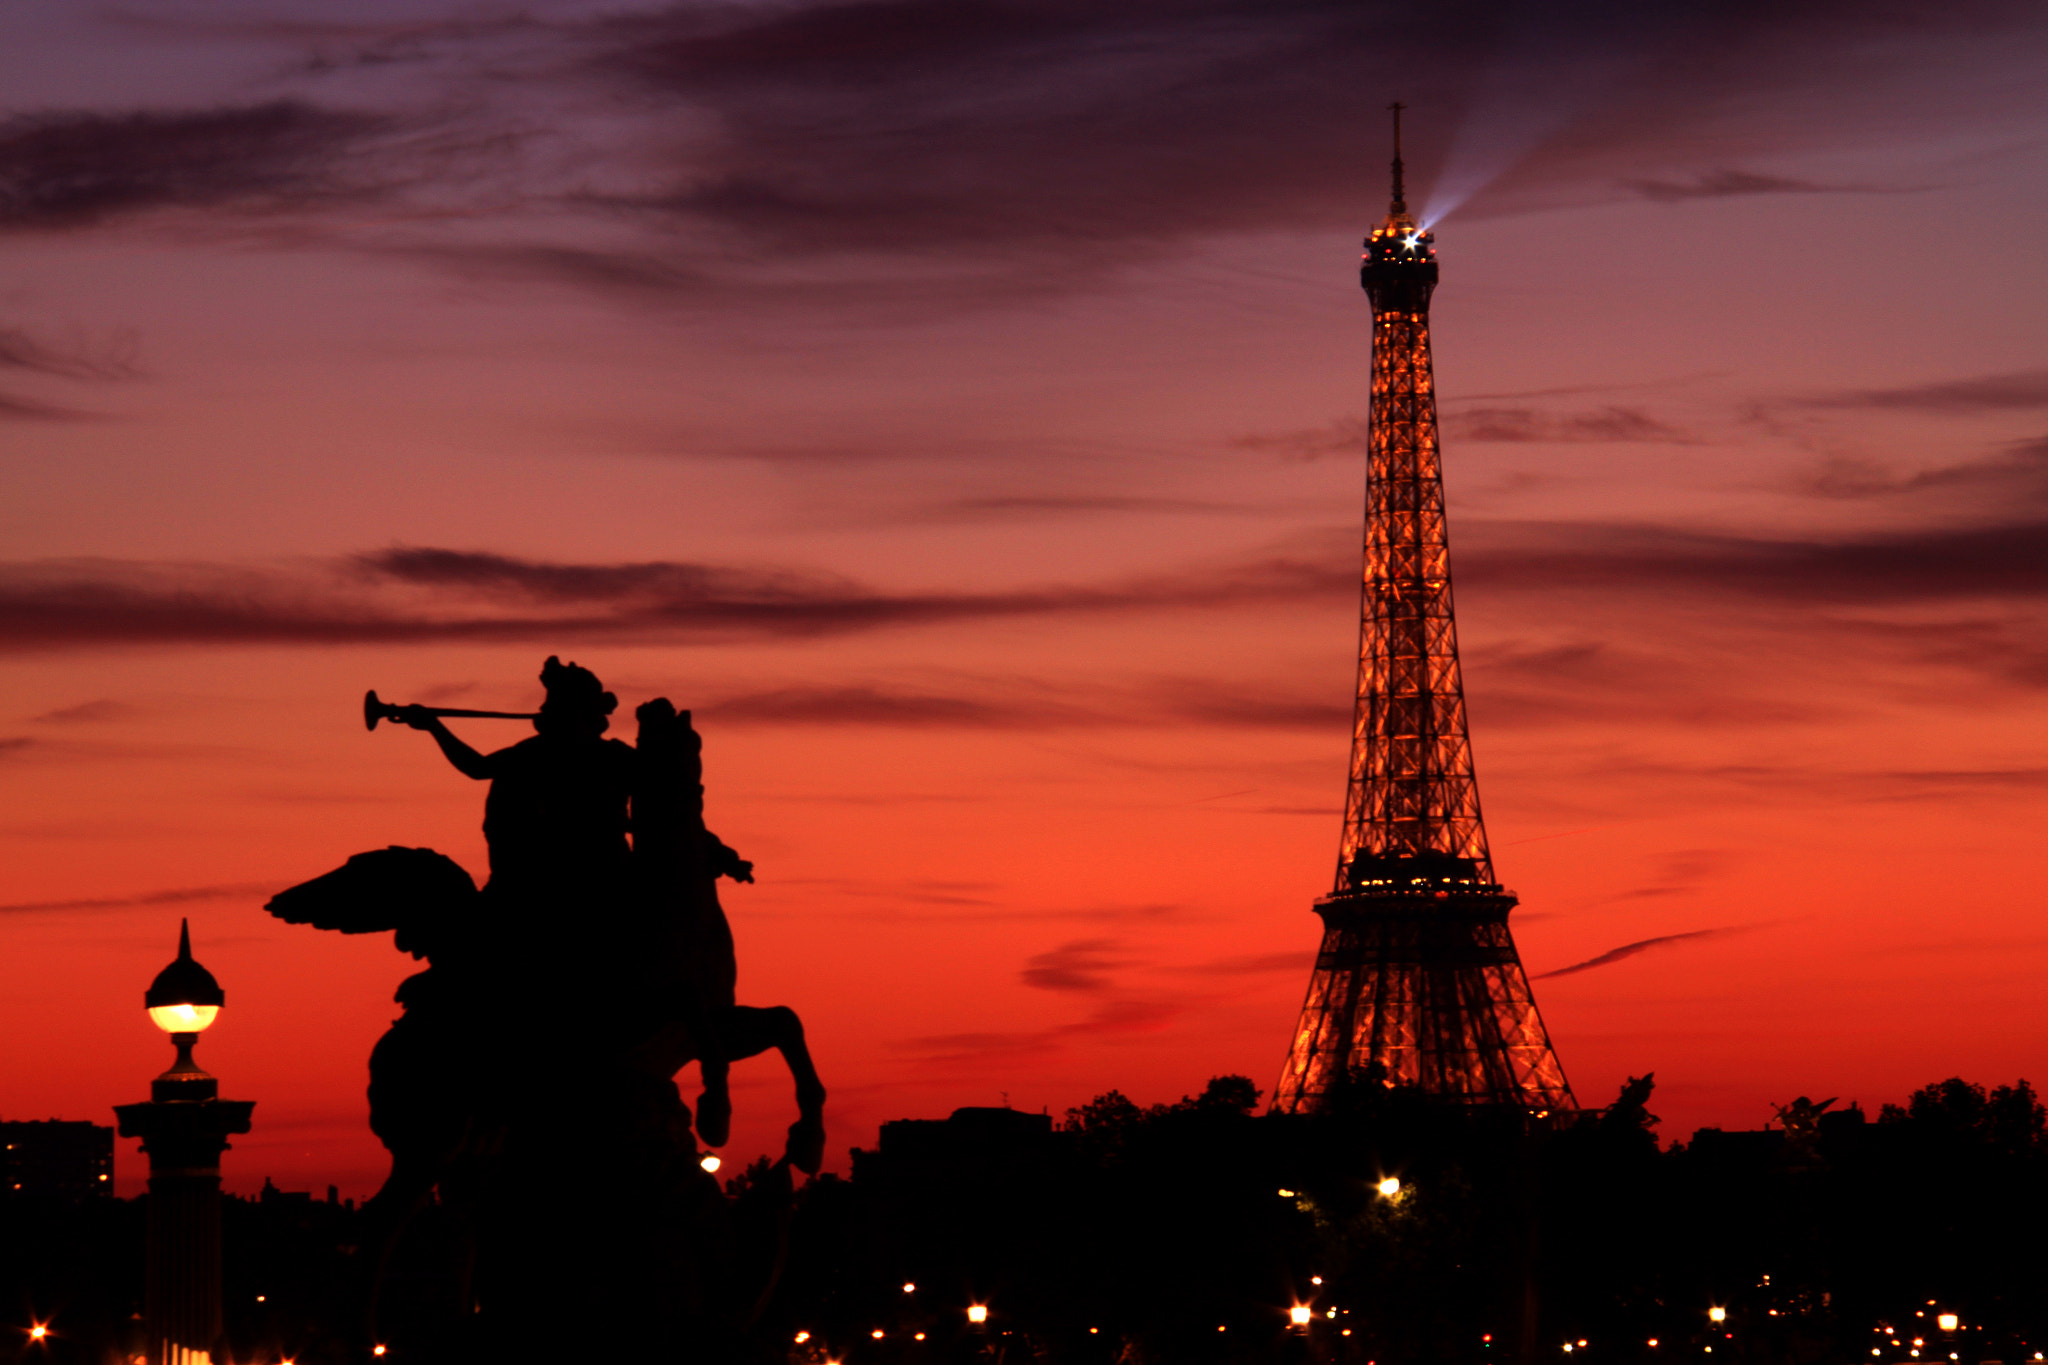 Photograph Paris at Dusk by Jacky CW on 500px